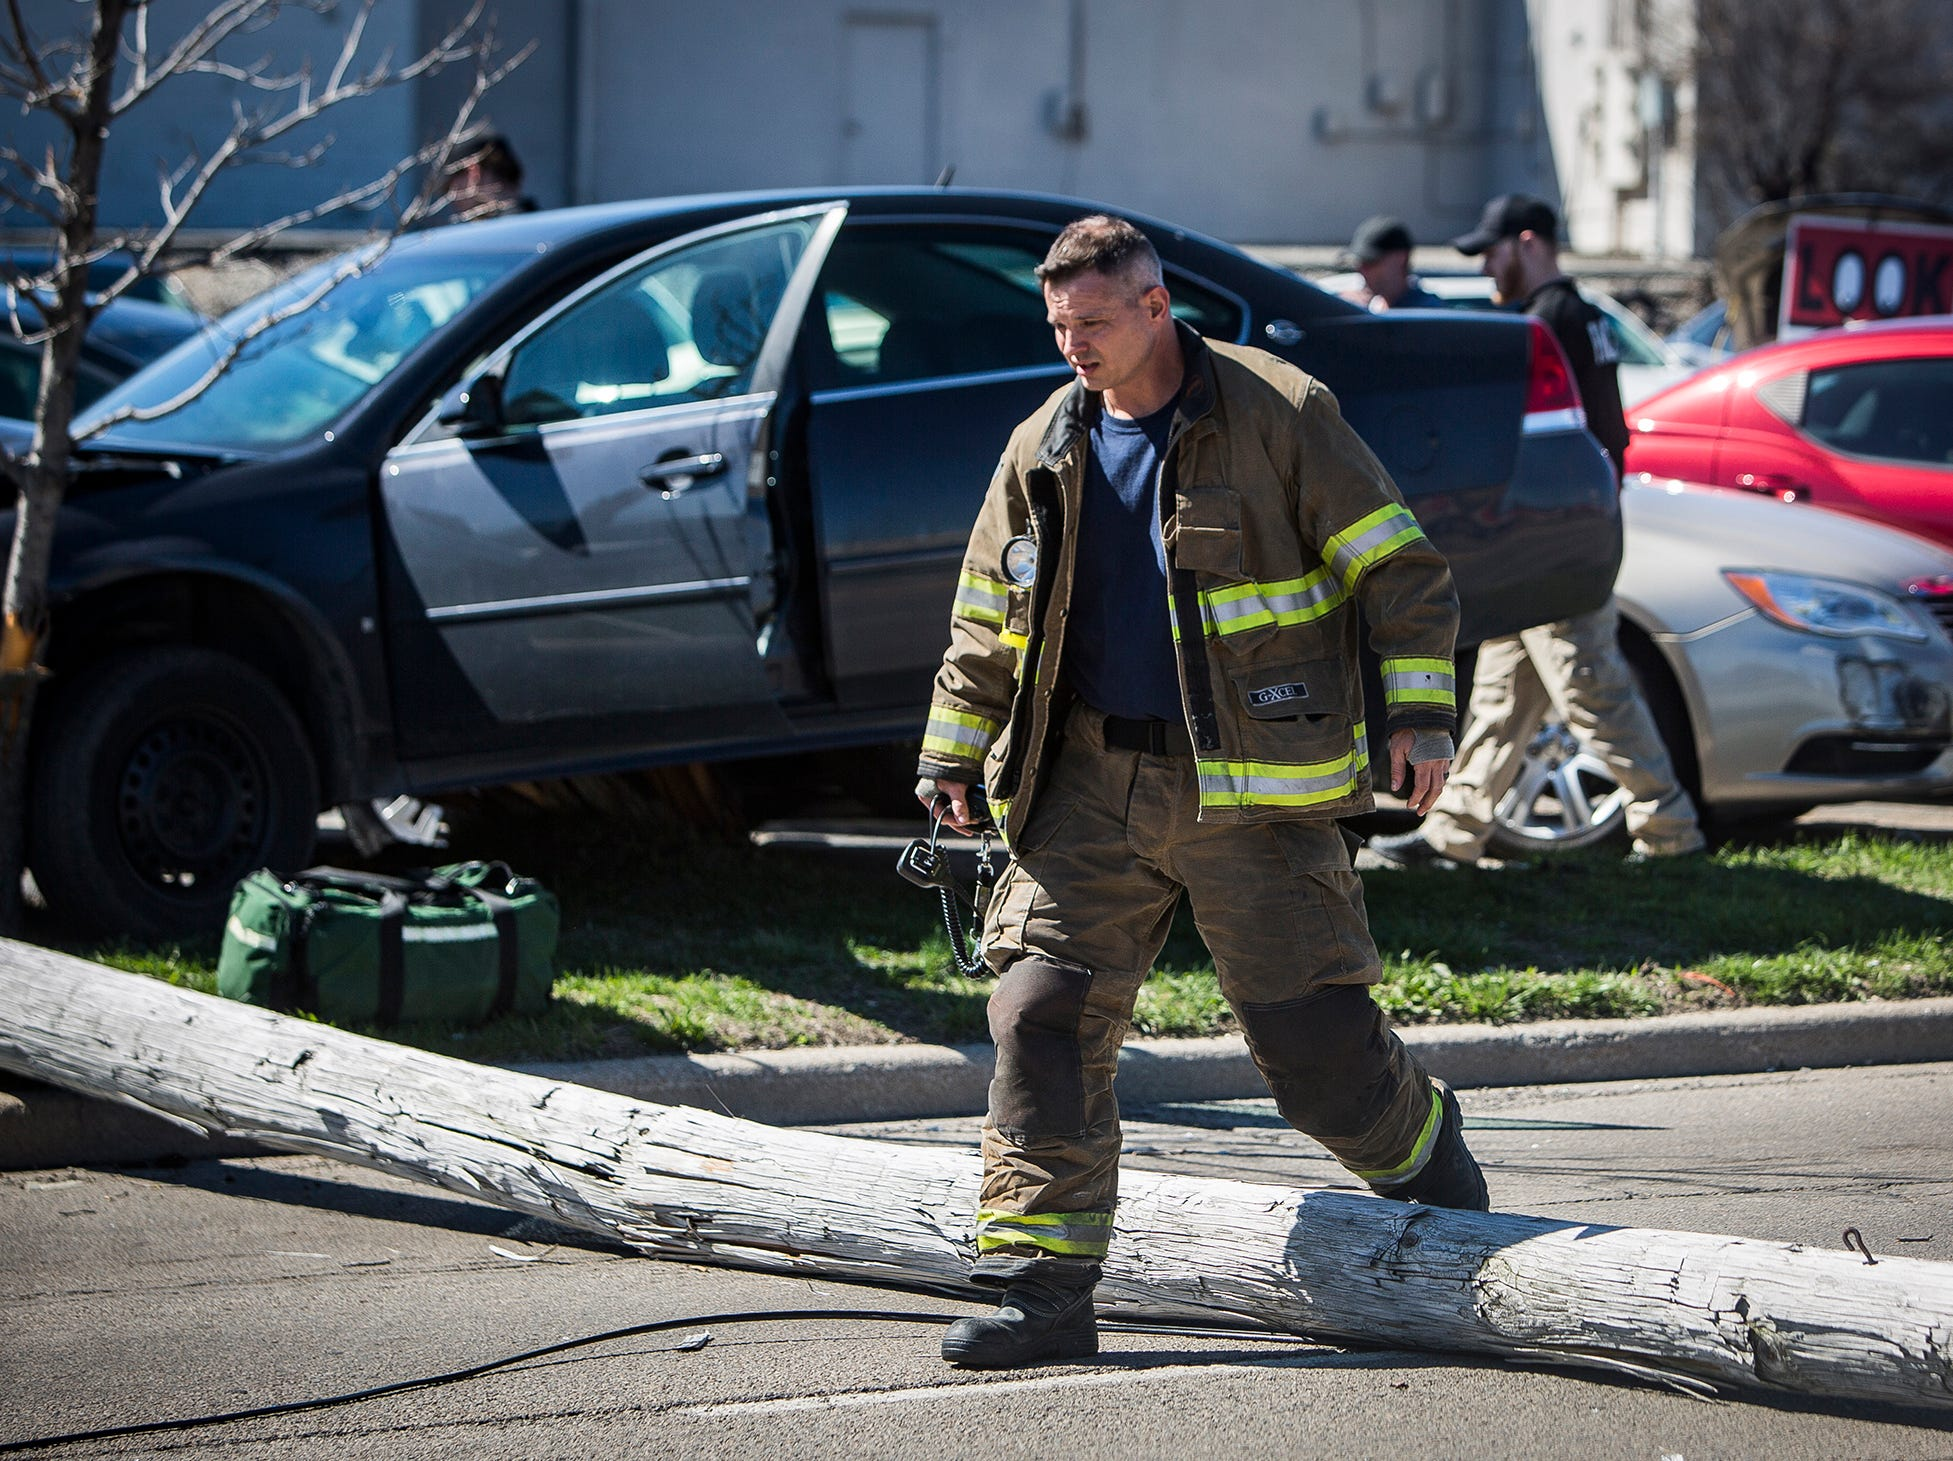 Police respond at the scene of a wreck involving one driver and five vehicles on N. Dr. Martin Luther King Jr. Blvd. near McGalliard Road at around 4 p.m. Tuesday. According to police the driver of a Chevy Impala was headed southbound when he veered off of the road, striking several for-sale cars in the Oak Motors lot before downing a utility pole. The toppled pole, which was attached to a live wire, created a safety hazard for drivers in the area. Police halted traffic for more than an hour as the scene was cleared. Emergency workers at the scene indicated driver inattention was the cause of the wreck. No serious injuries were reported during the incident.